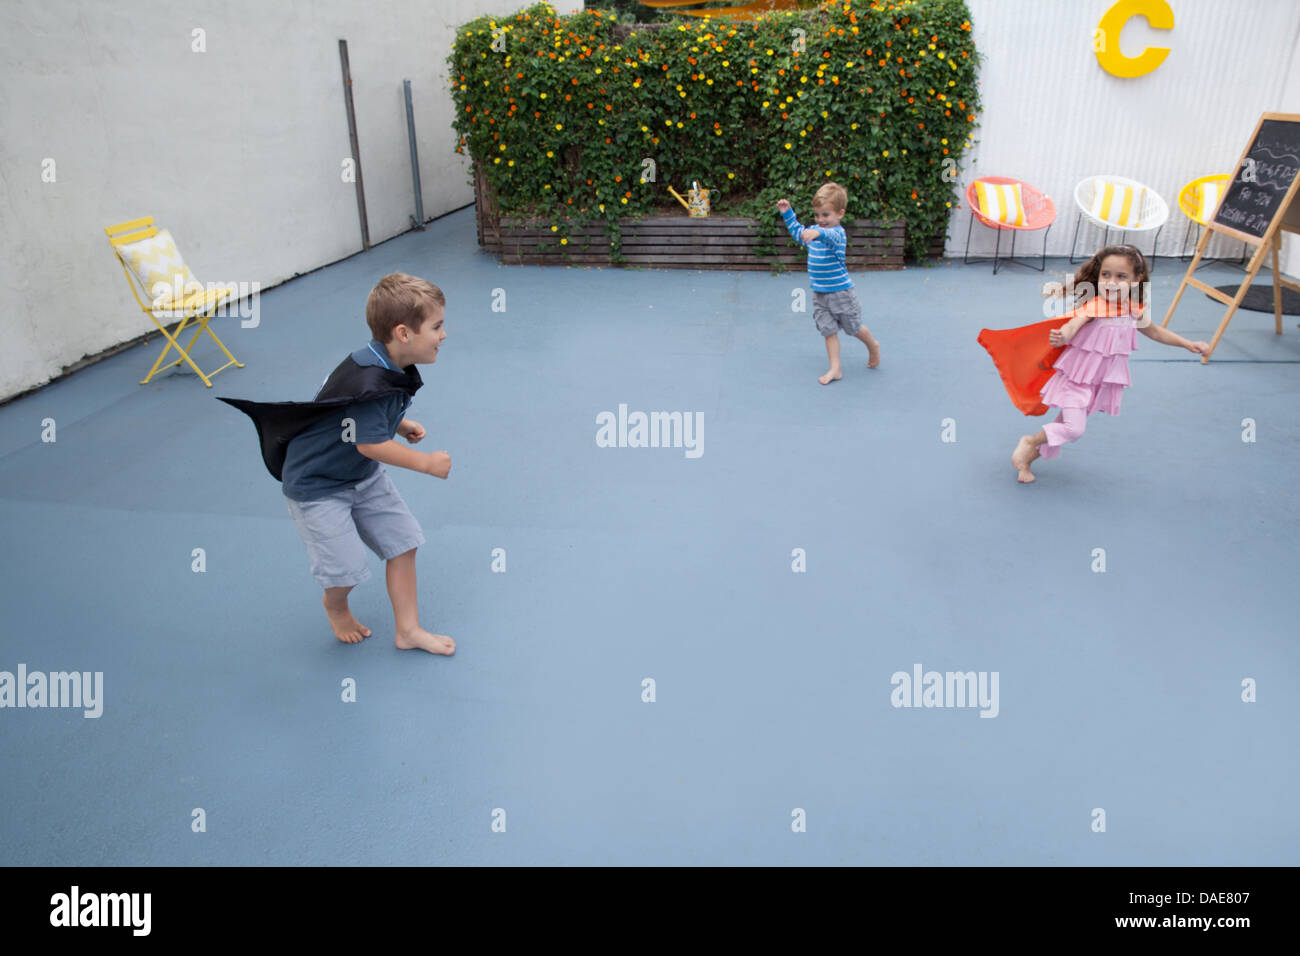 Boys and girl wearing superhero capes playing in back yard - Stock Image